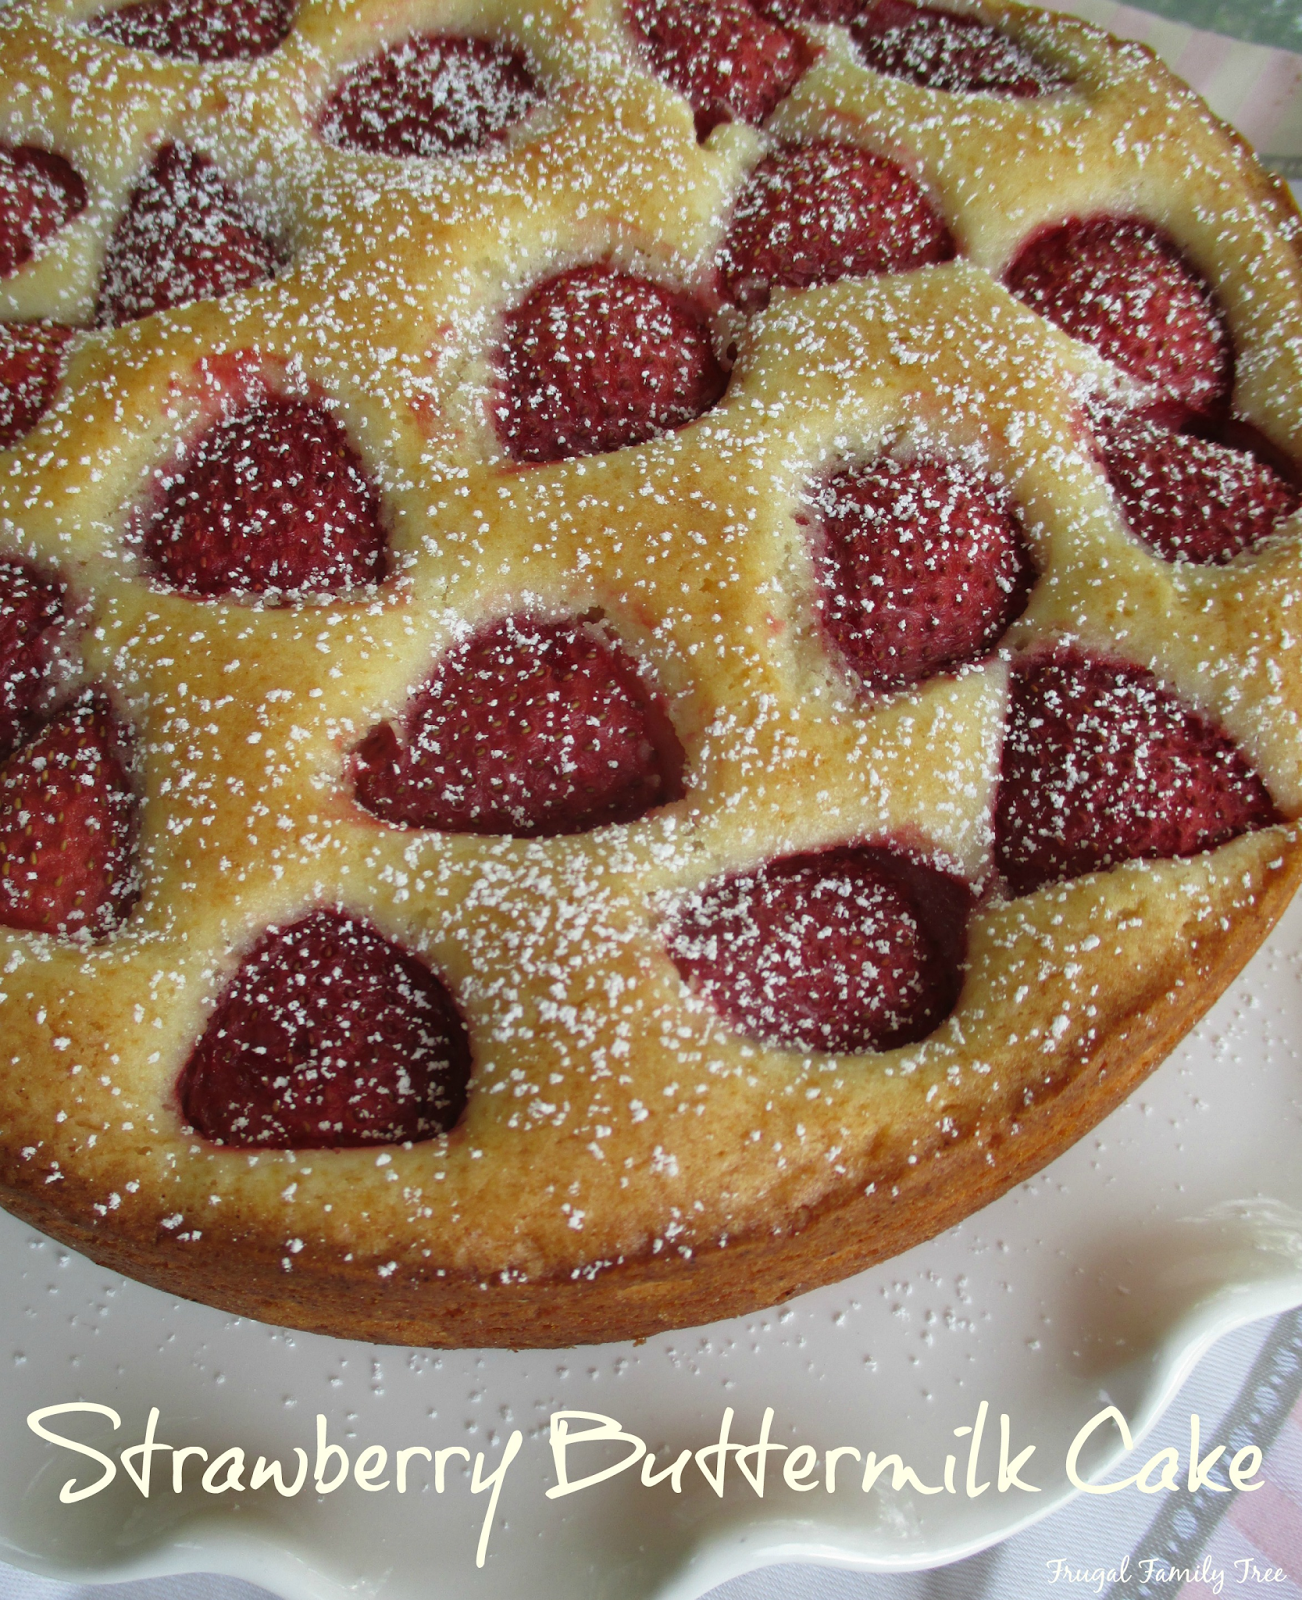 Strawberry Buttermilk Cake Recipe From Back In The Day